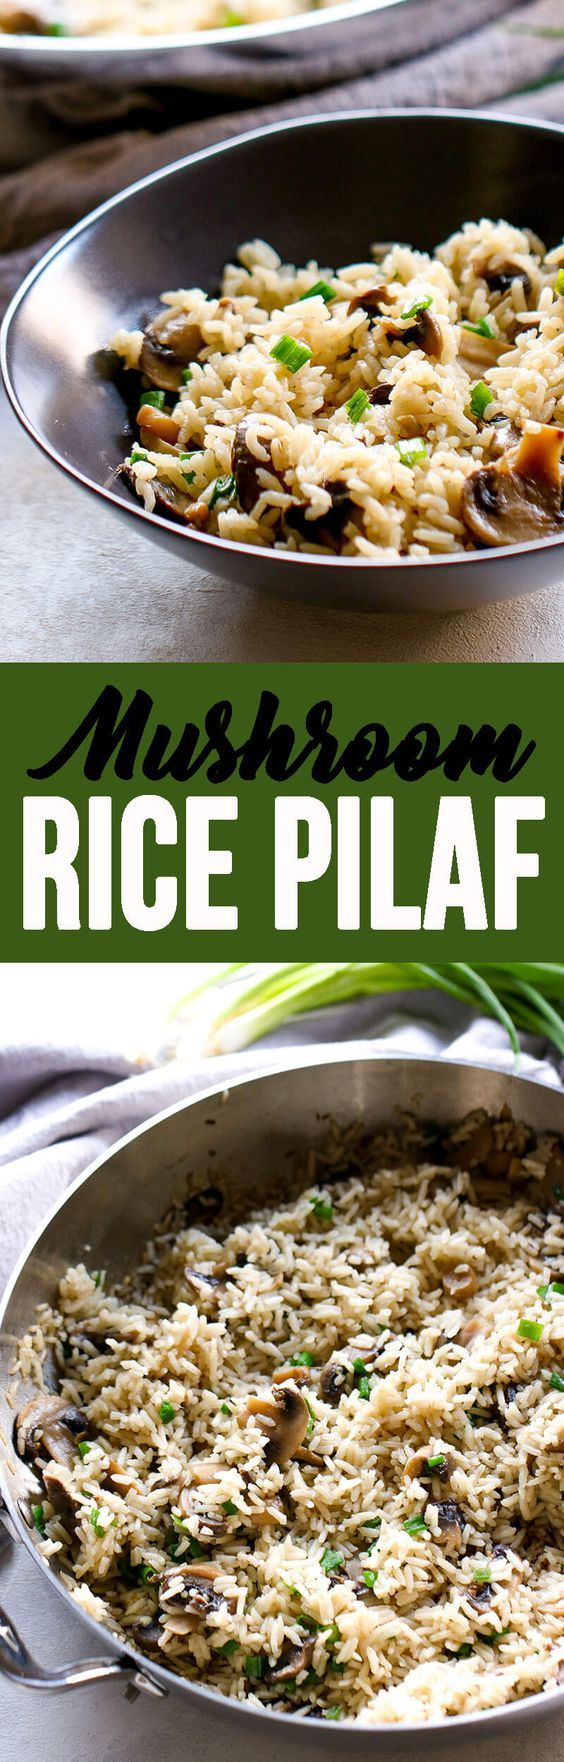 Mushroom Rice Pilaf is super easy to throw together and packed with delicious flavors! The perfect addition to any dinner really! #mushroom #sidedish #rice #mushroomricepilaf #flavorfulsidedish #palif